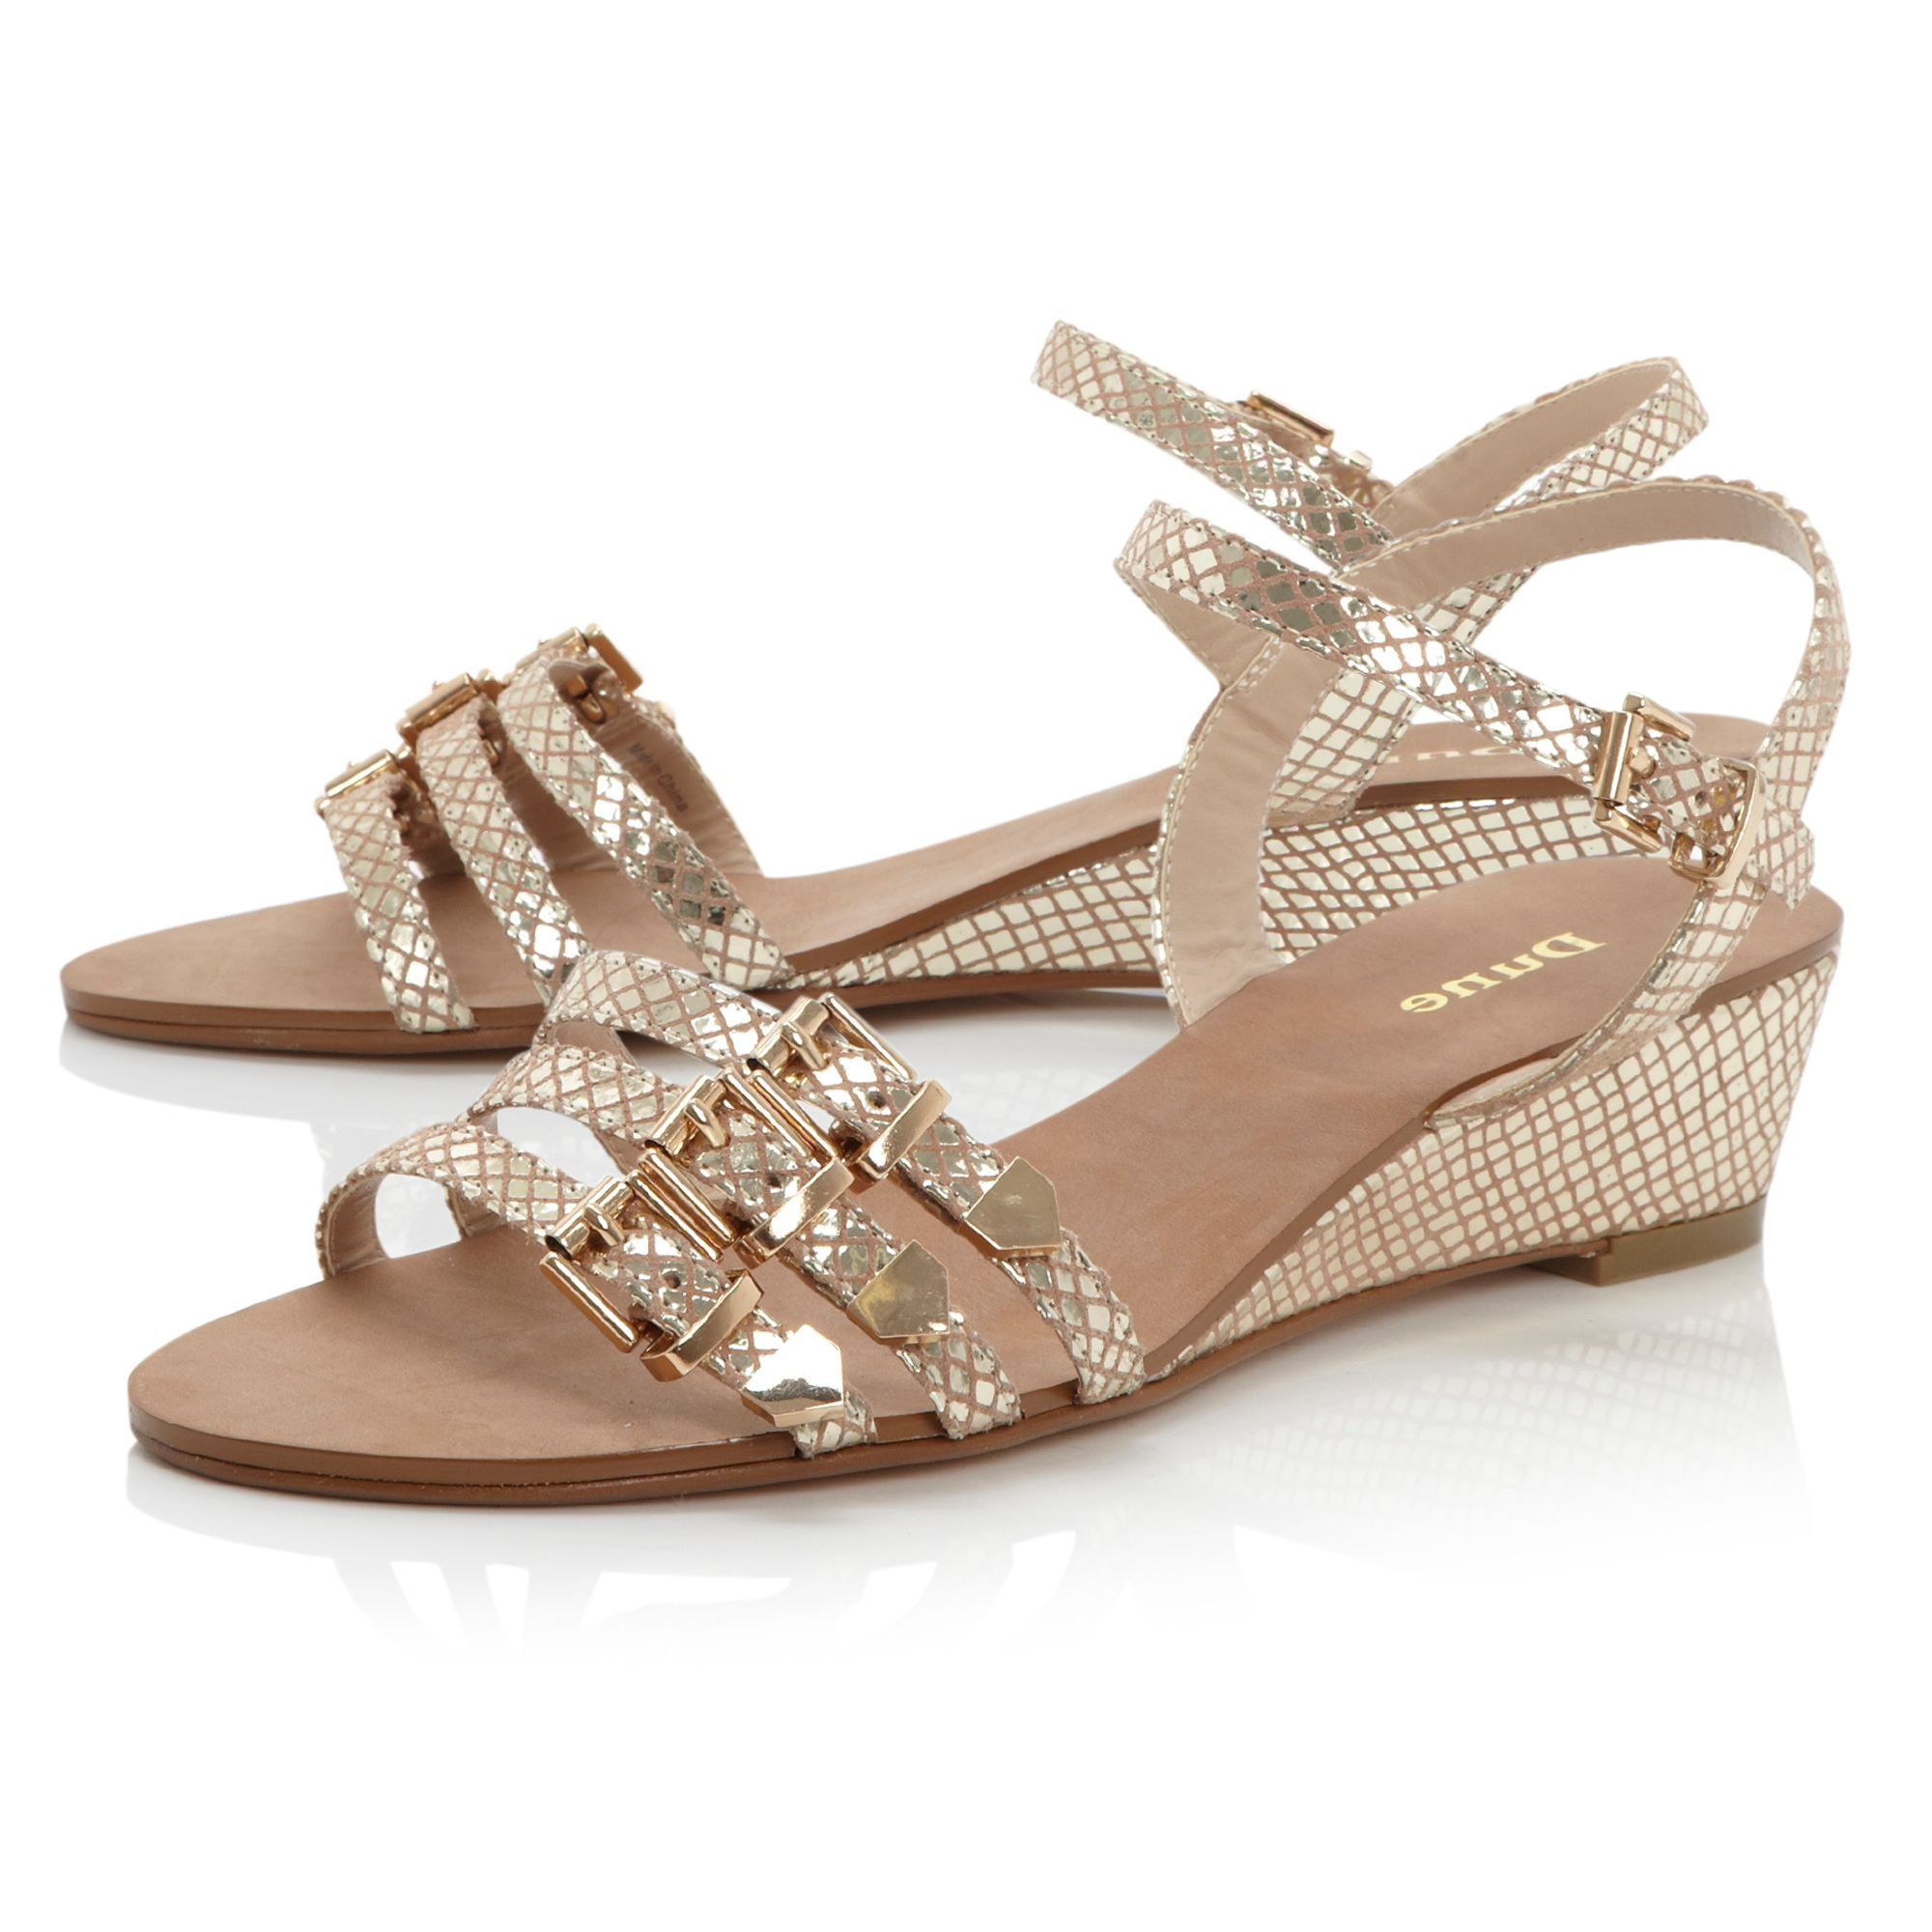 Gripped peep toe multi strap wedge sandals